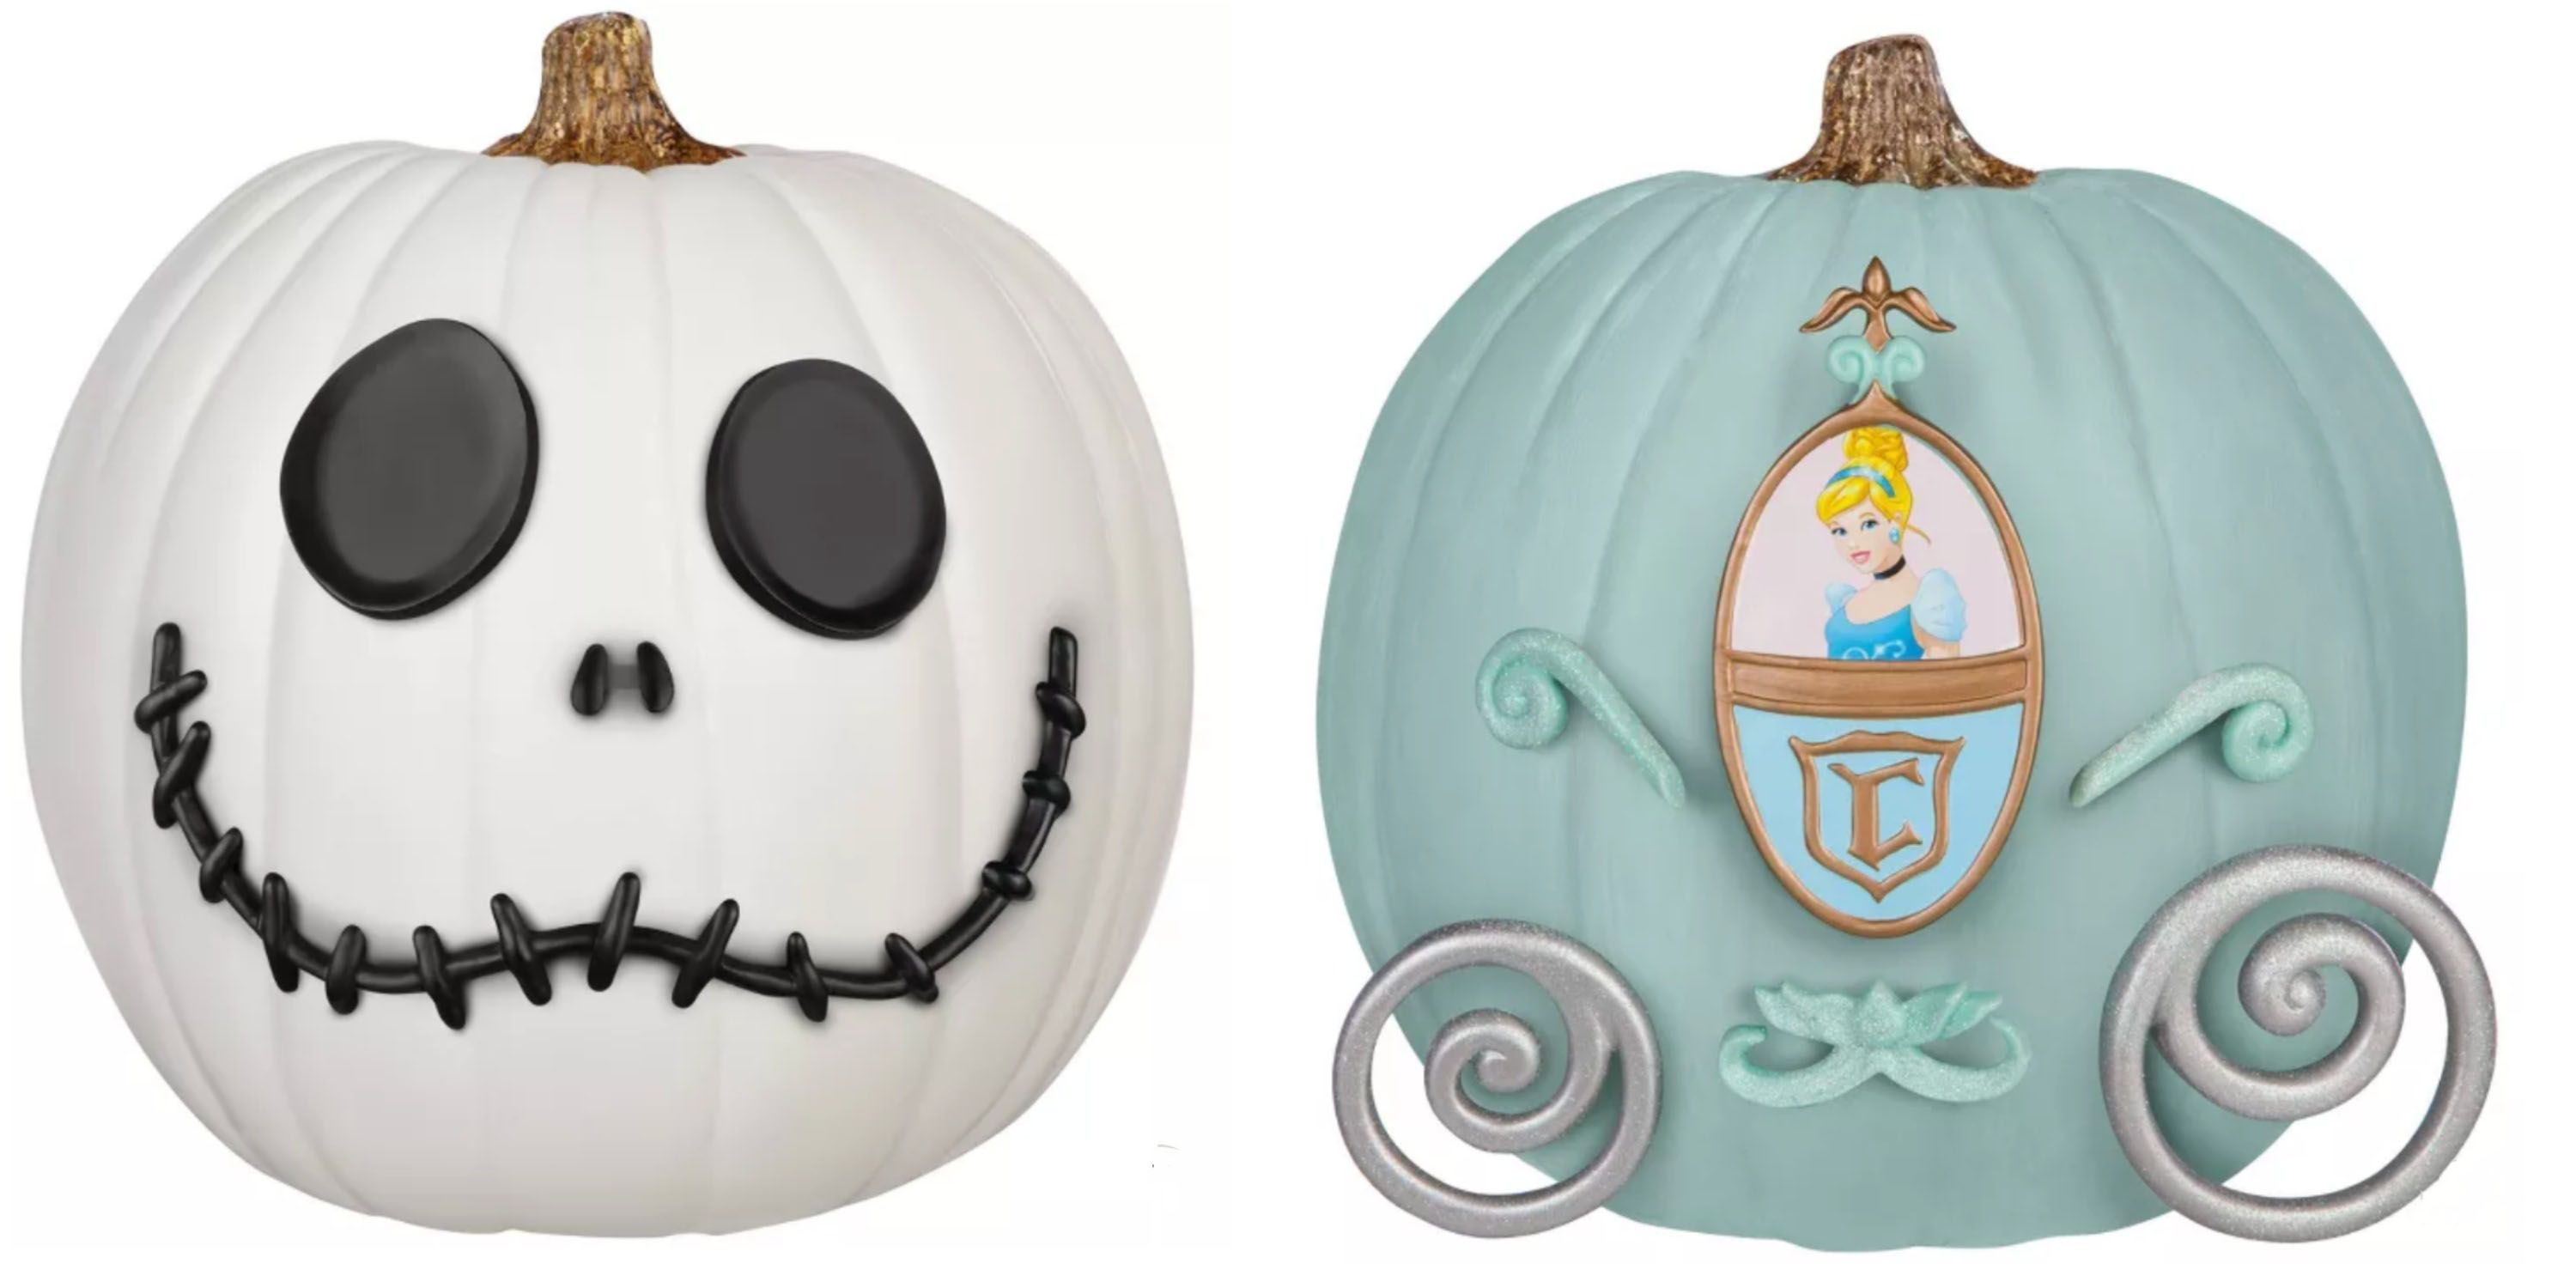 Target Has Disney Pumpkin-Decorating Kits That Don't Require You To Do Any Carving